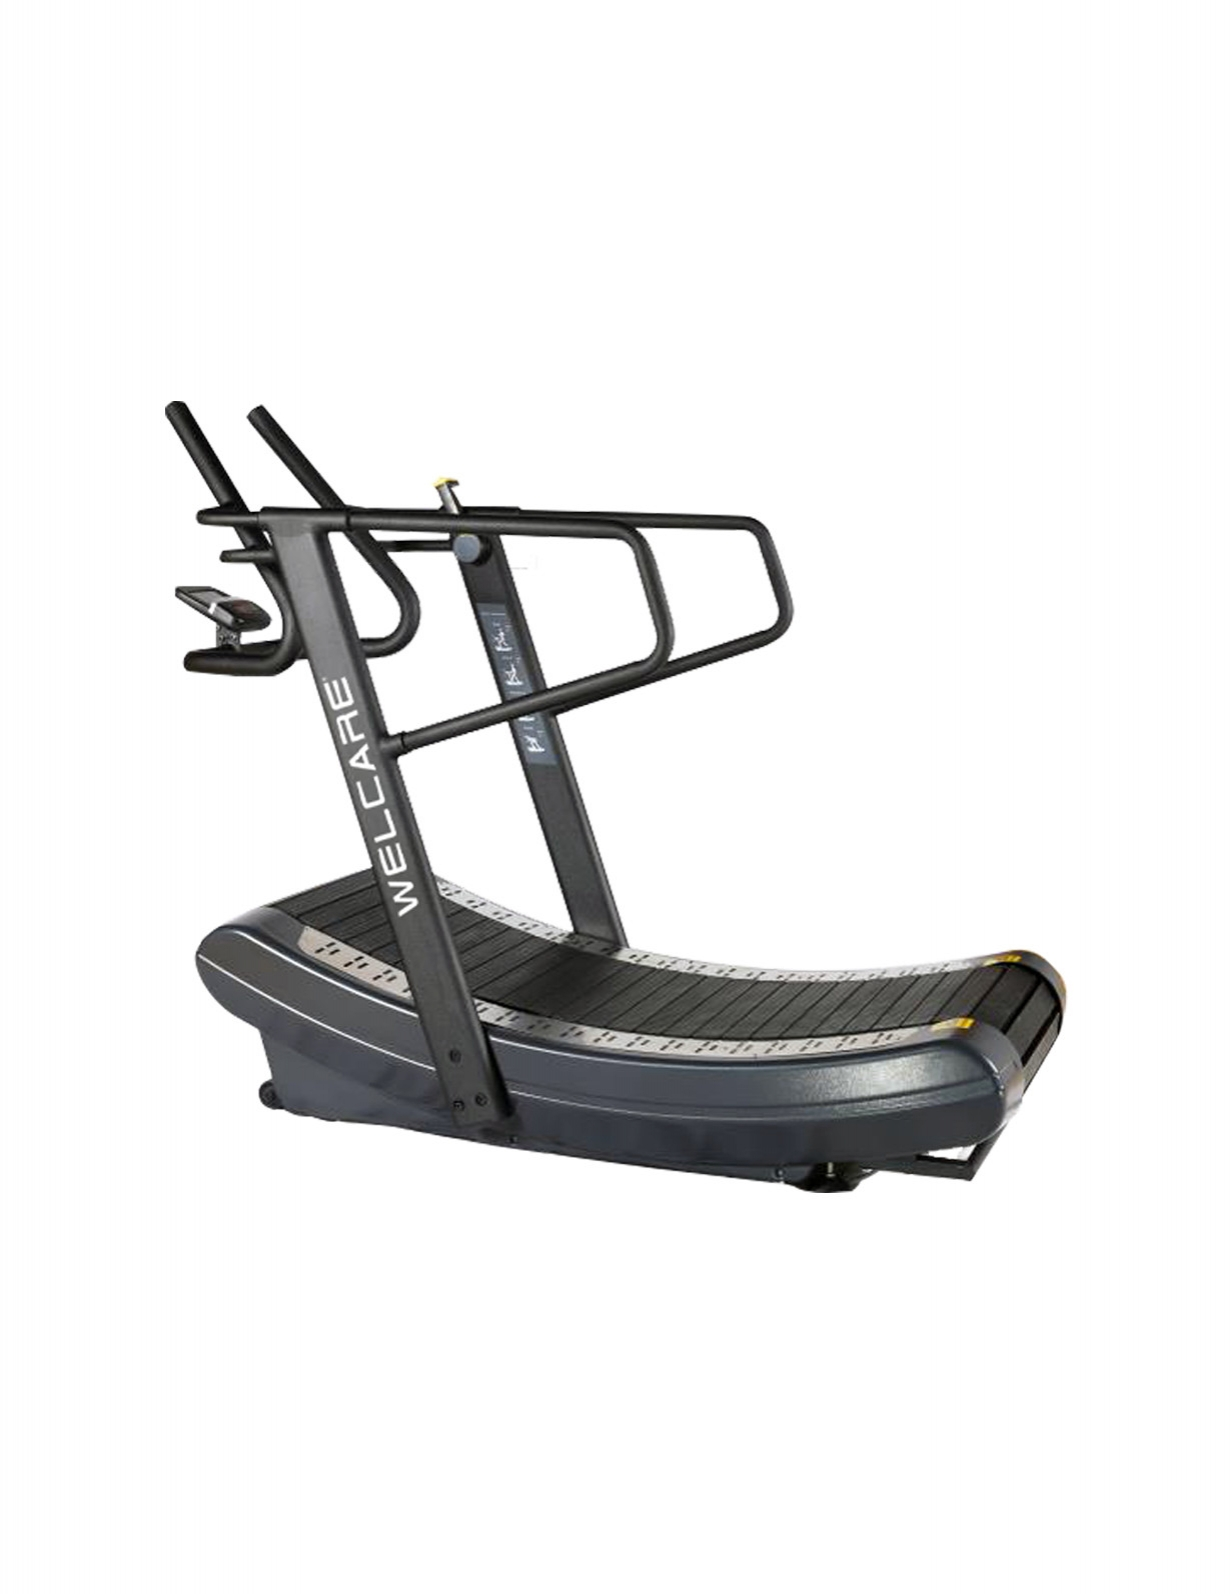 WC-8002 Non motorized Treadmill